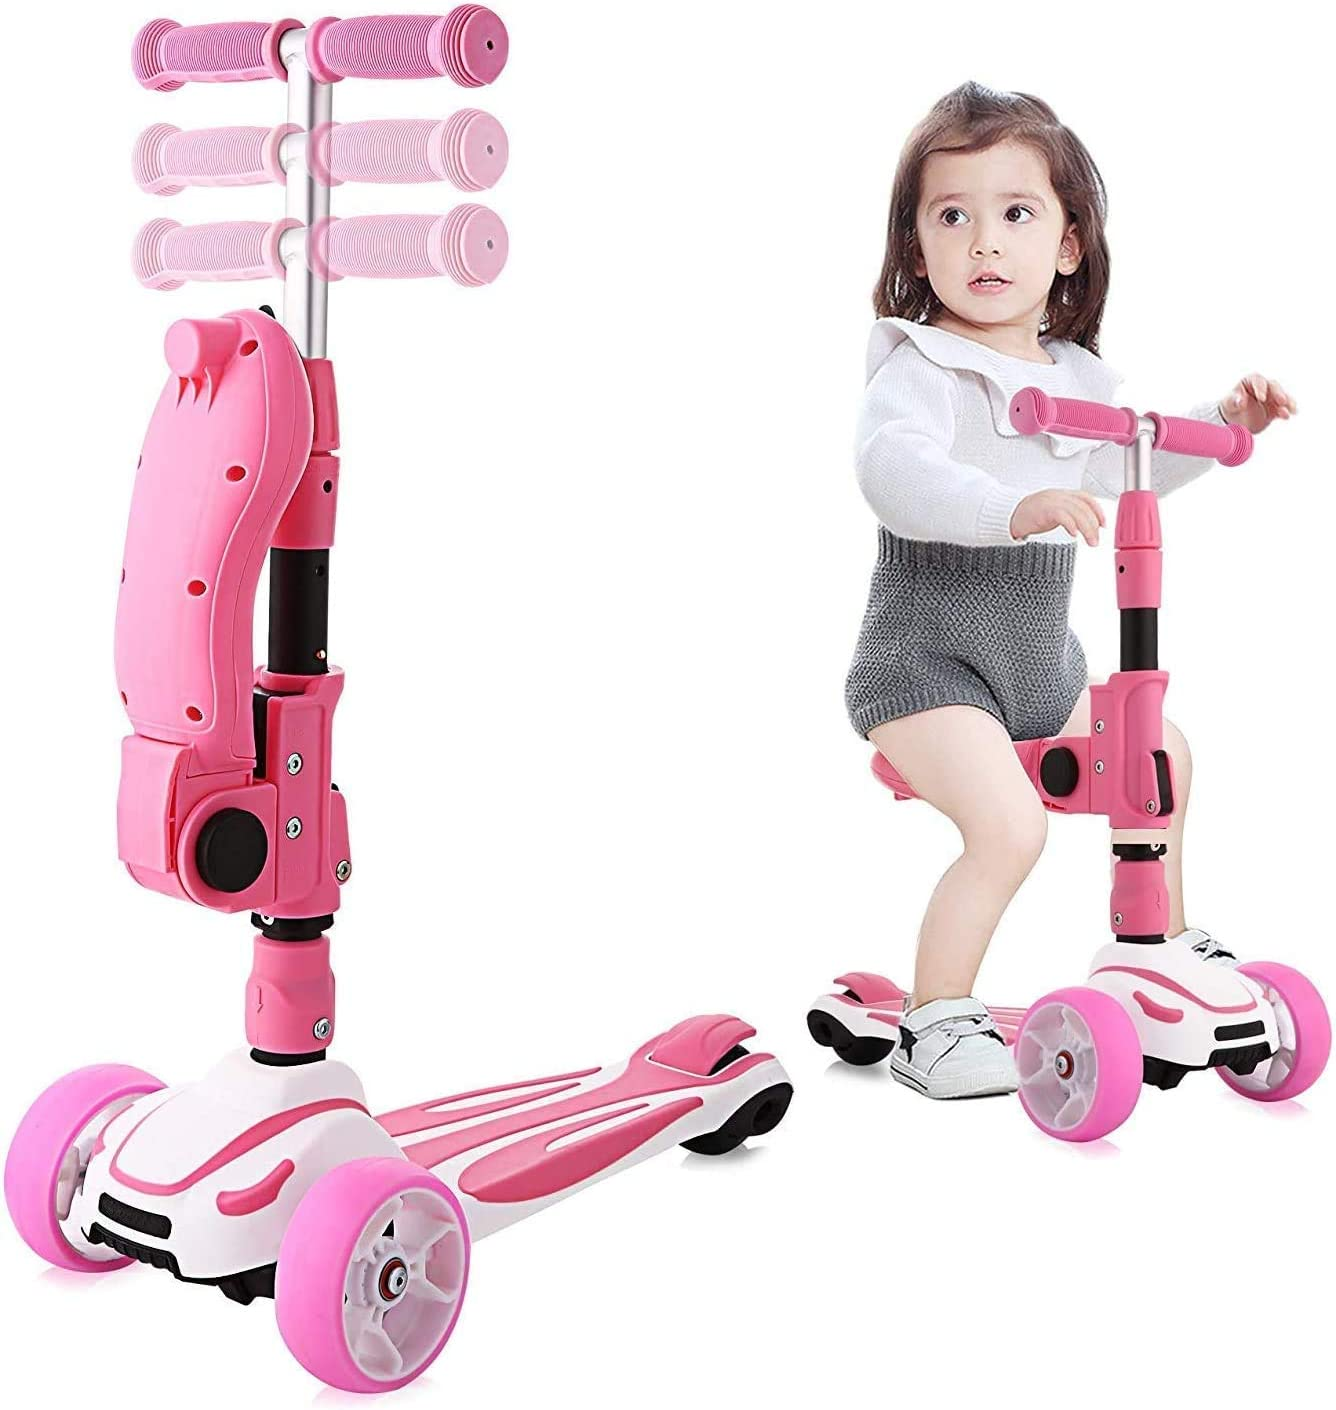 Hikole 3 Wheels Scooter for Kids with Foldable and Removable Seat Adjustable Height, 3 LED Light Wheels, Kick Scooter for Girls Boys 2-8 Years Old Pink